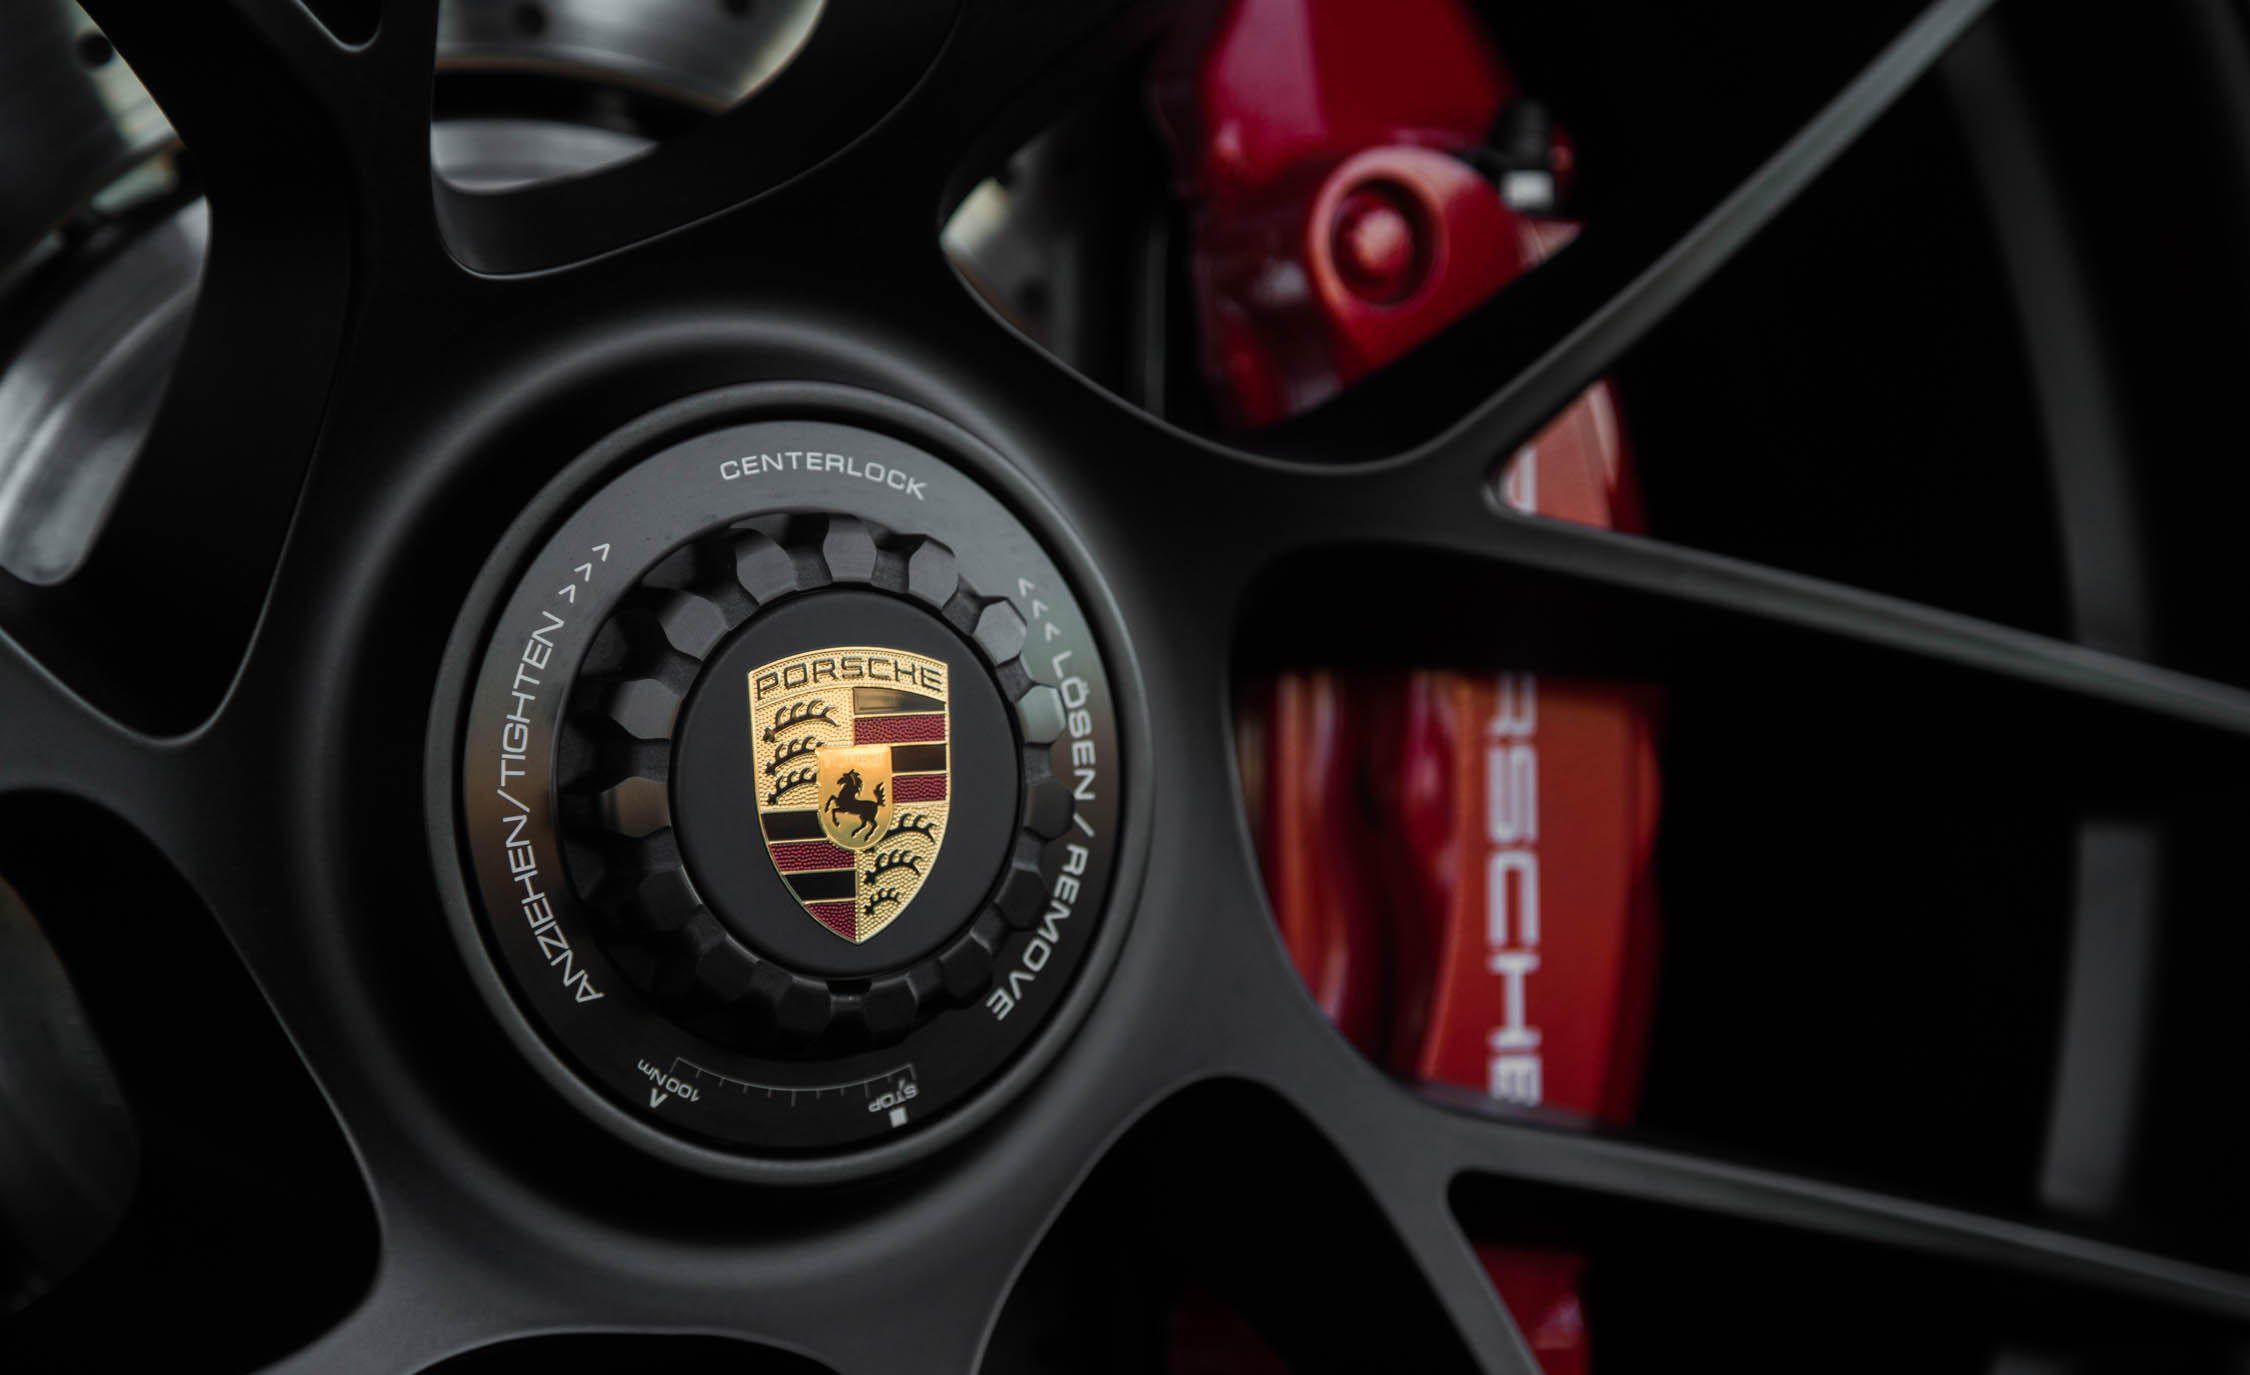 2017 Porsche 911 Targa 4 GTS Exterior View Wheel Velg (Photo 66 of 97)